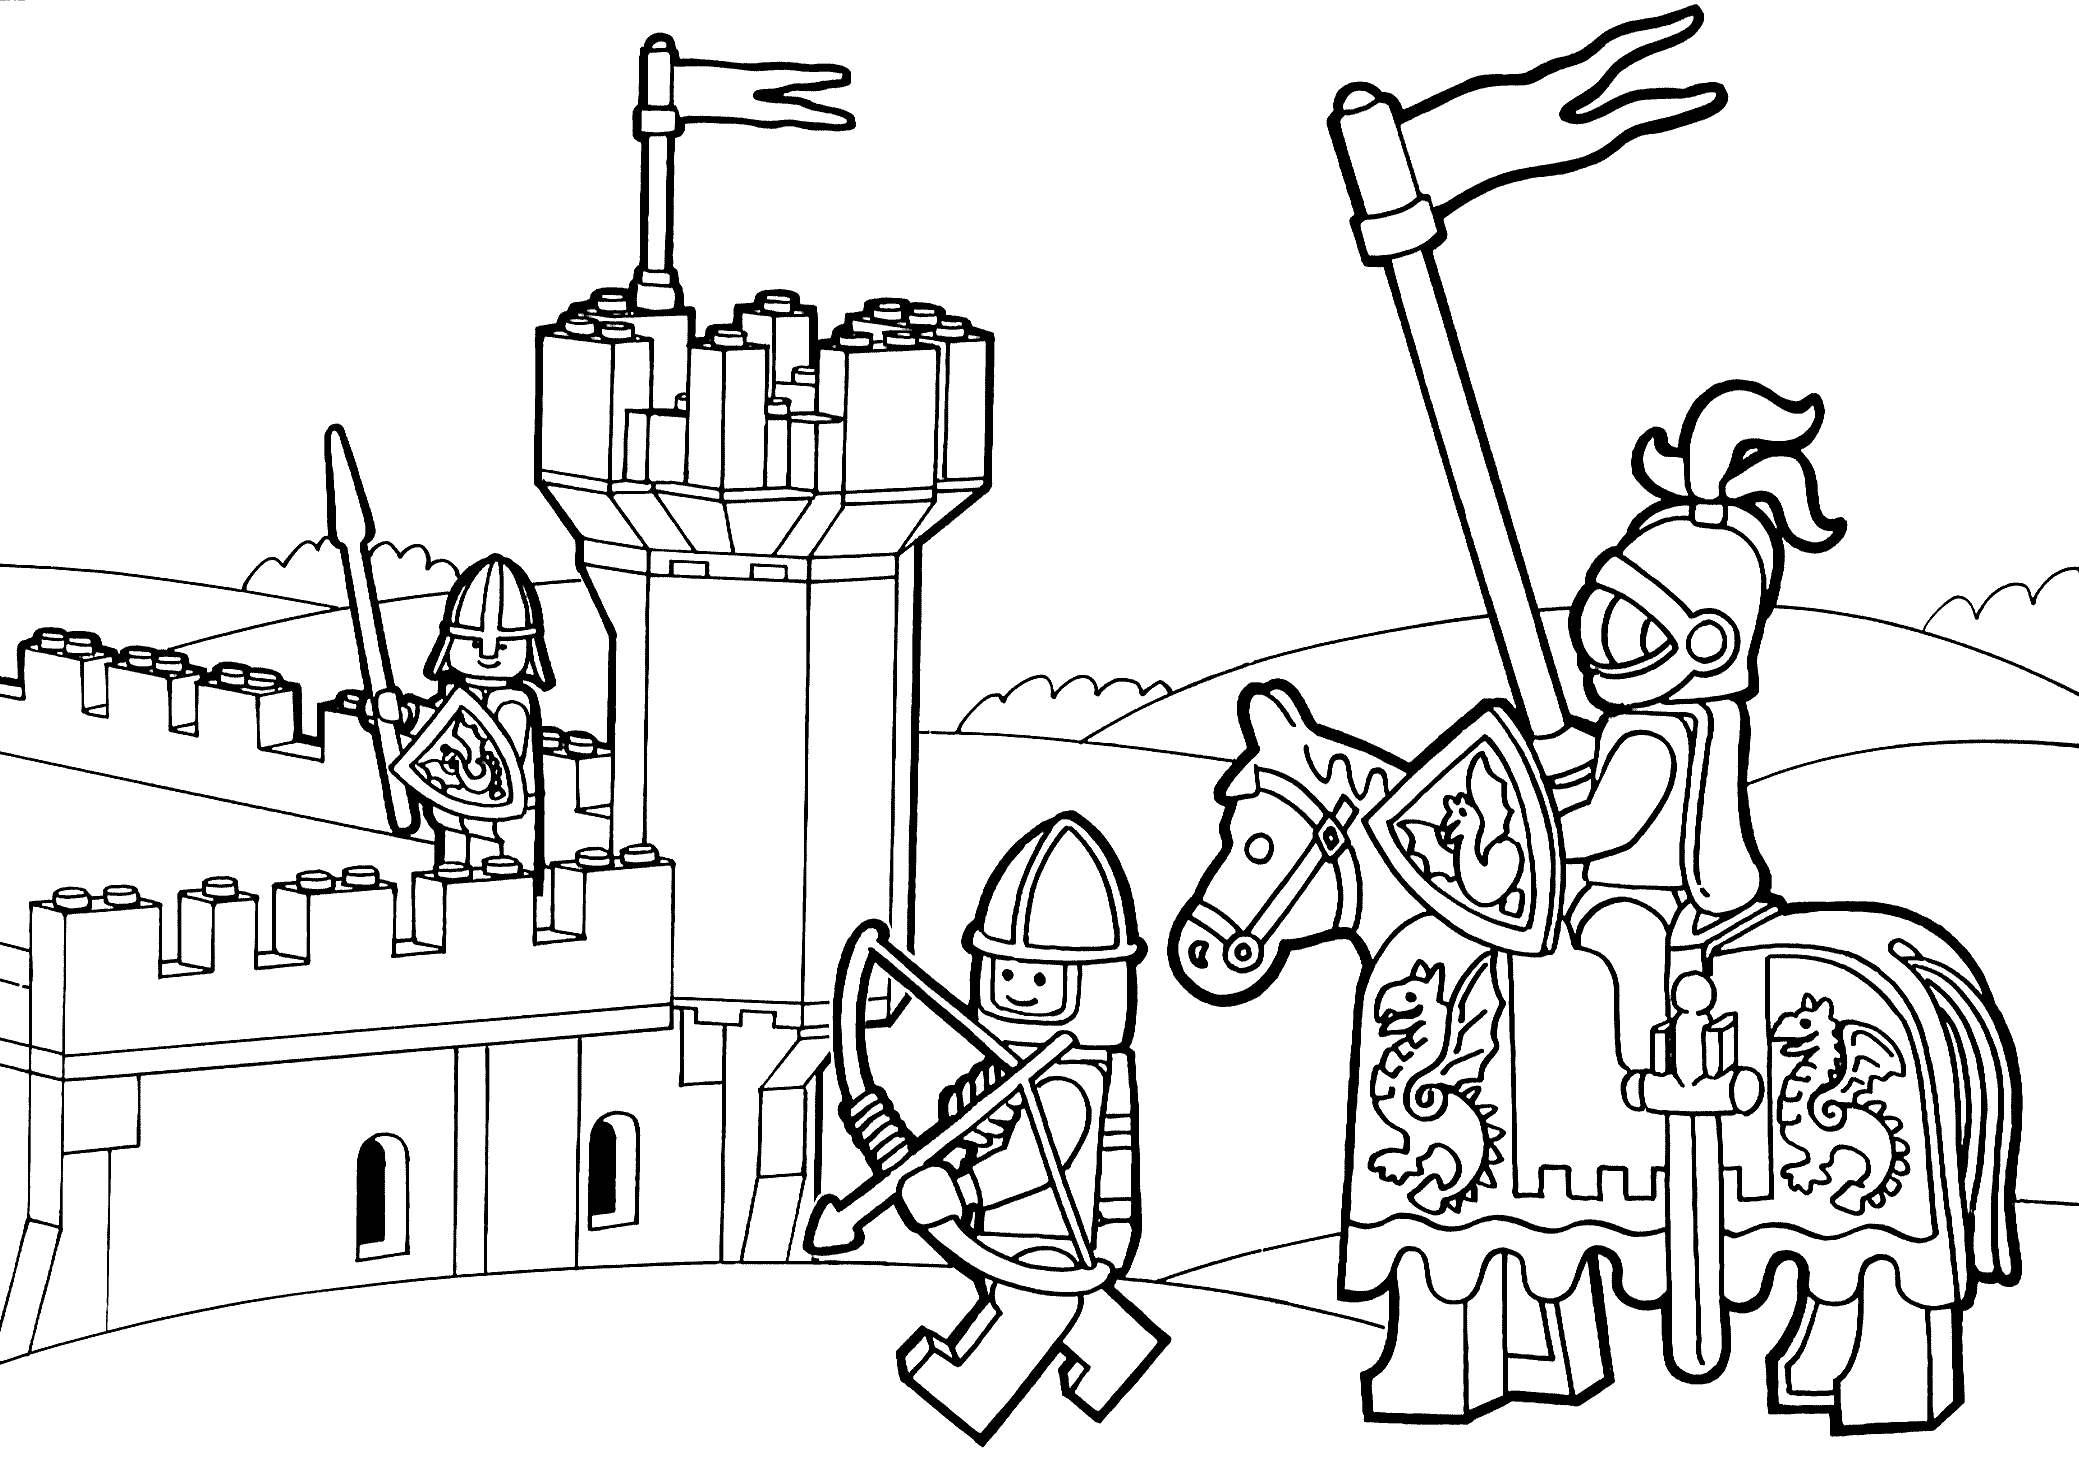 2079x1483 Cool Lego City Coloring Pages Coloringsuite